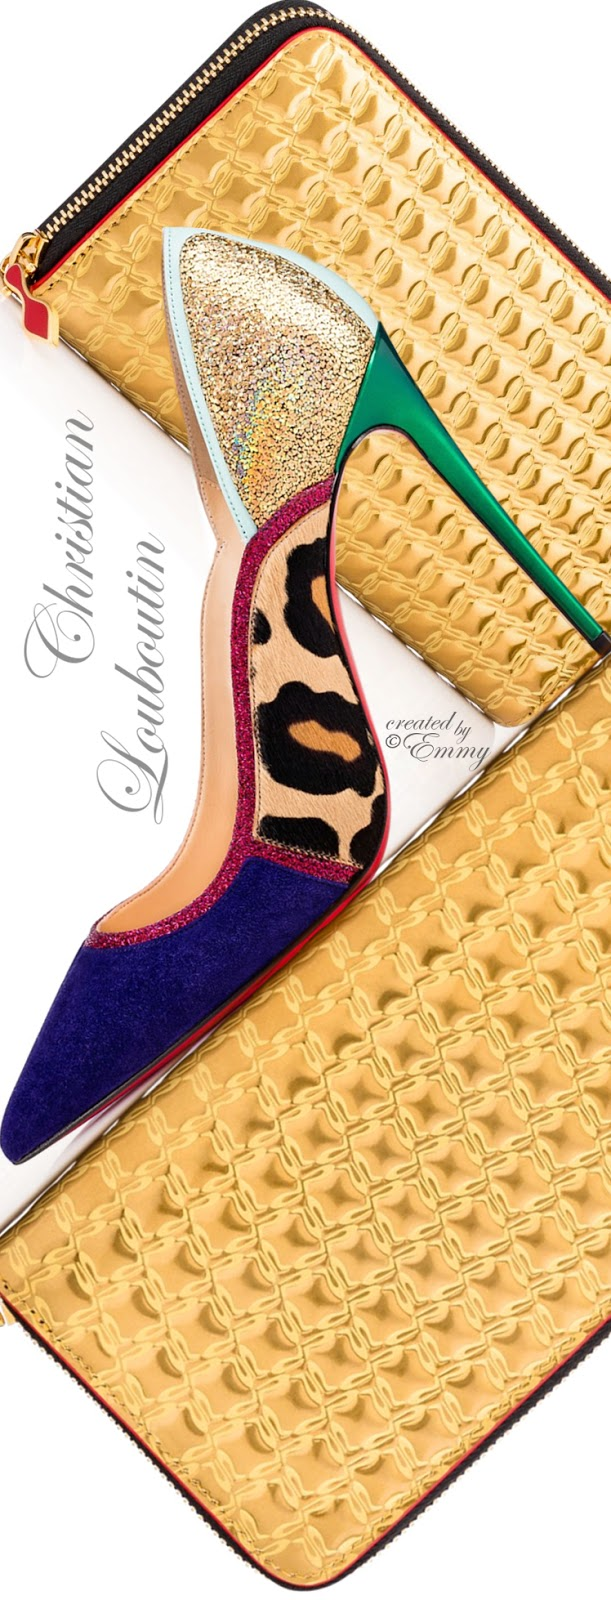 Brilliant Luxury ♦ Christian Louboutin Serianina Veau Velours-Pony & Panettone Zipped Continental Wallet